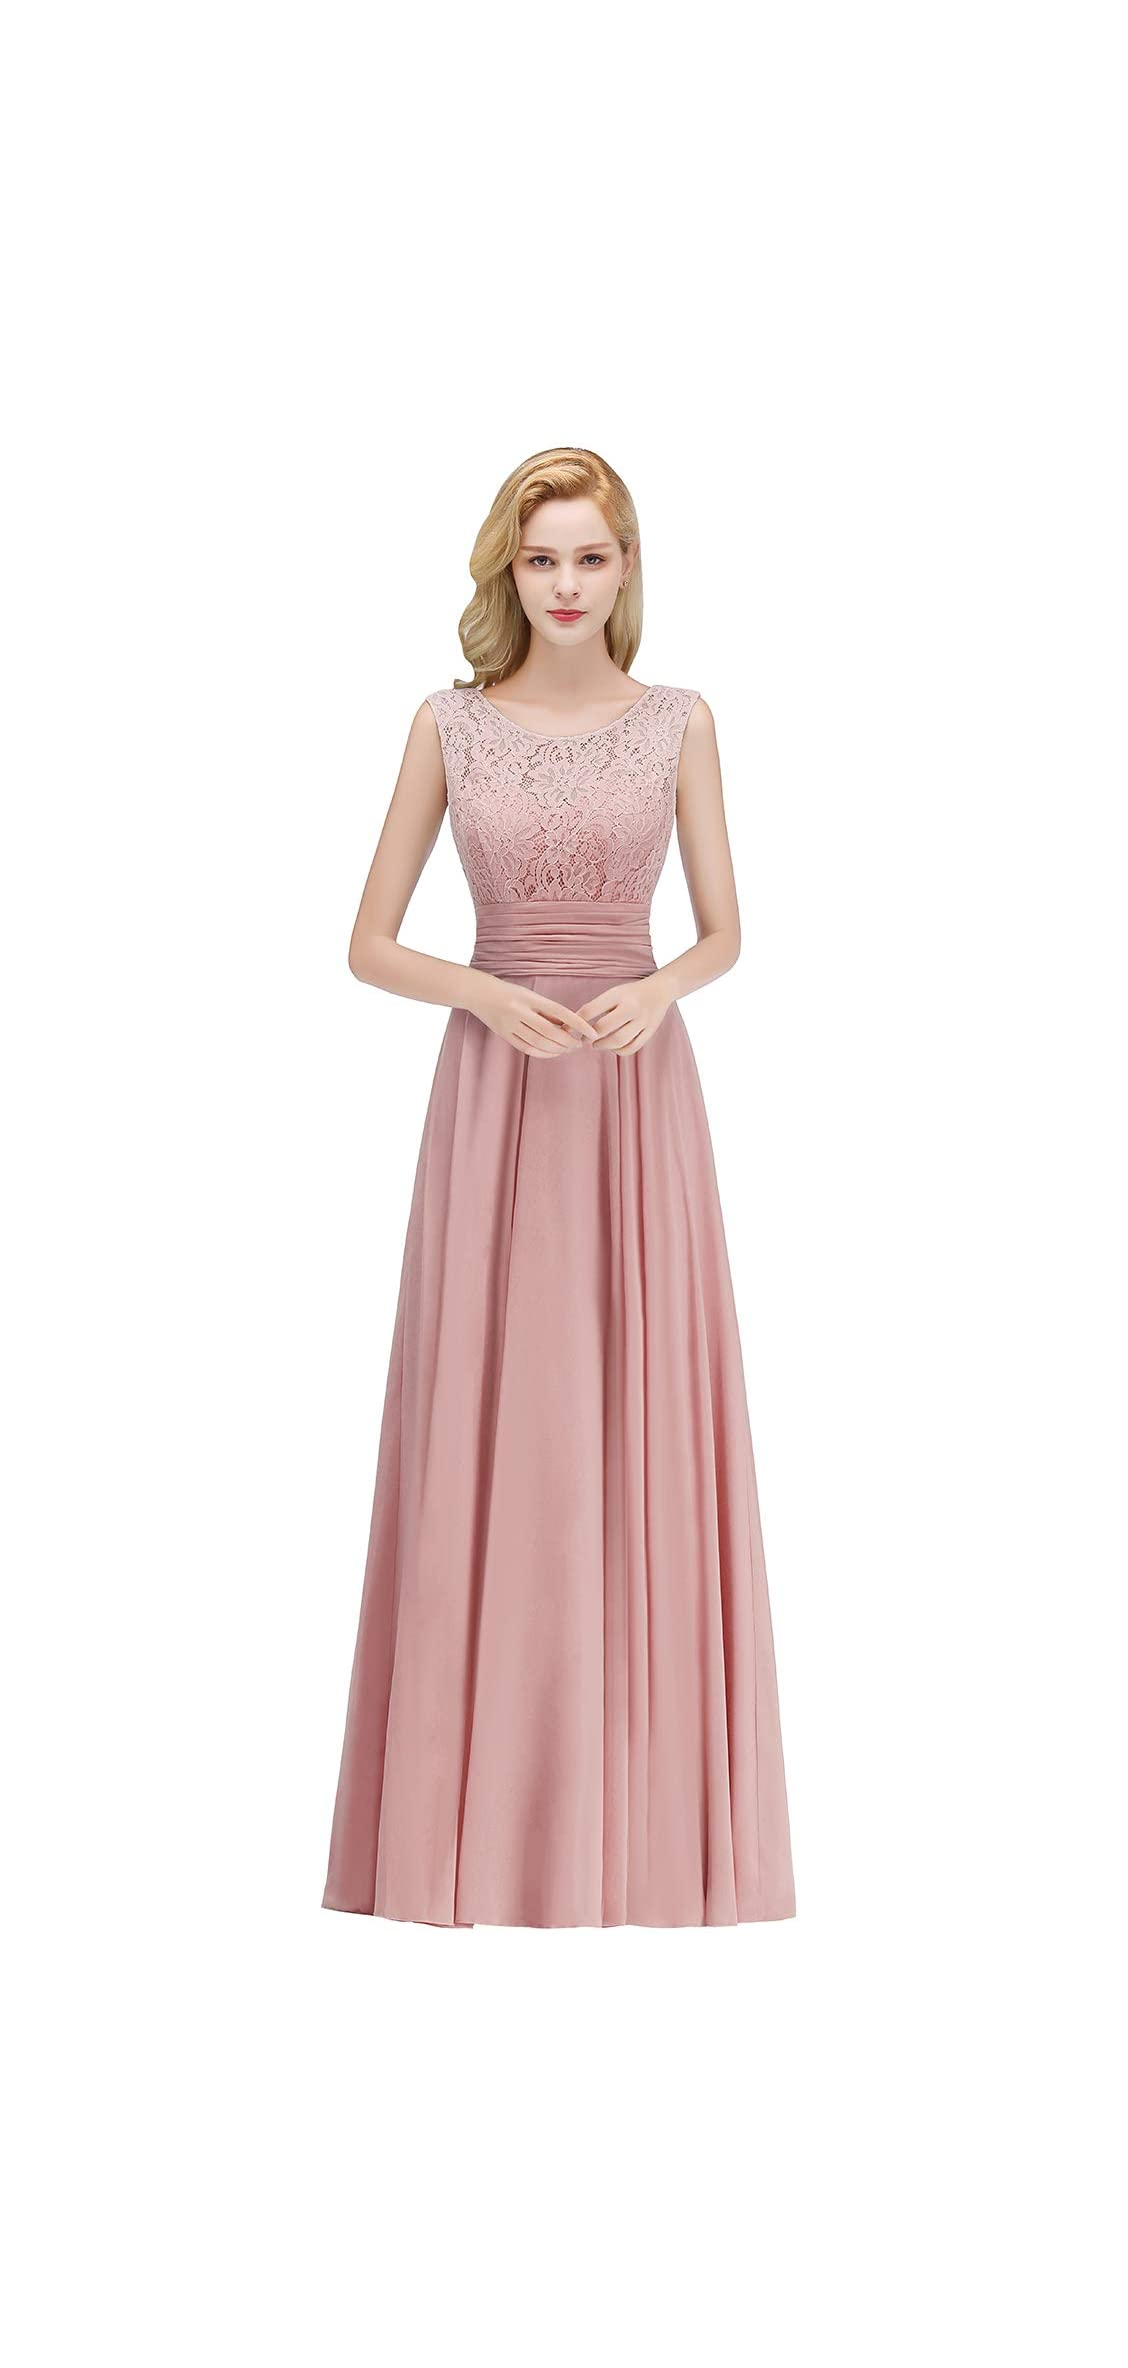 Babyonline Women Lace Chiffon Bridesmaid Dress Long Formal Gown